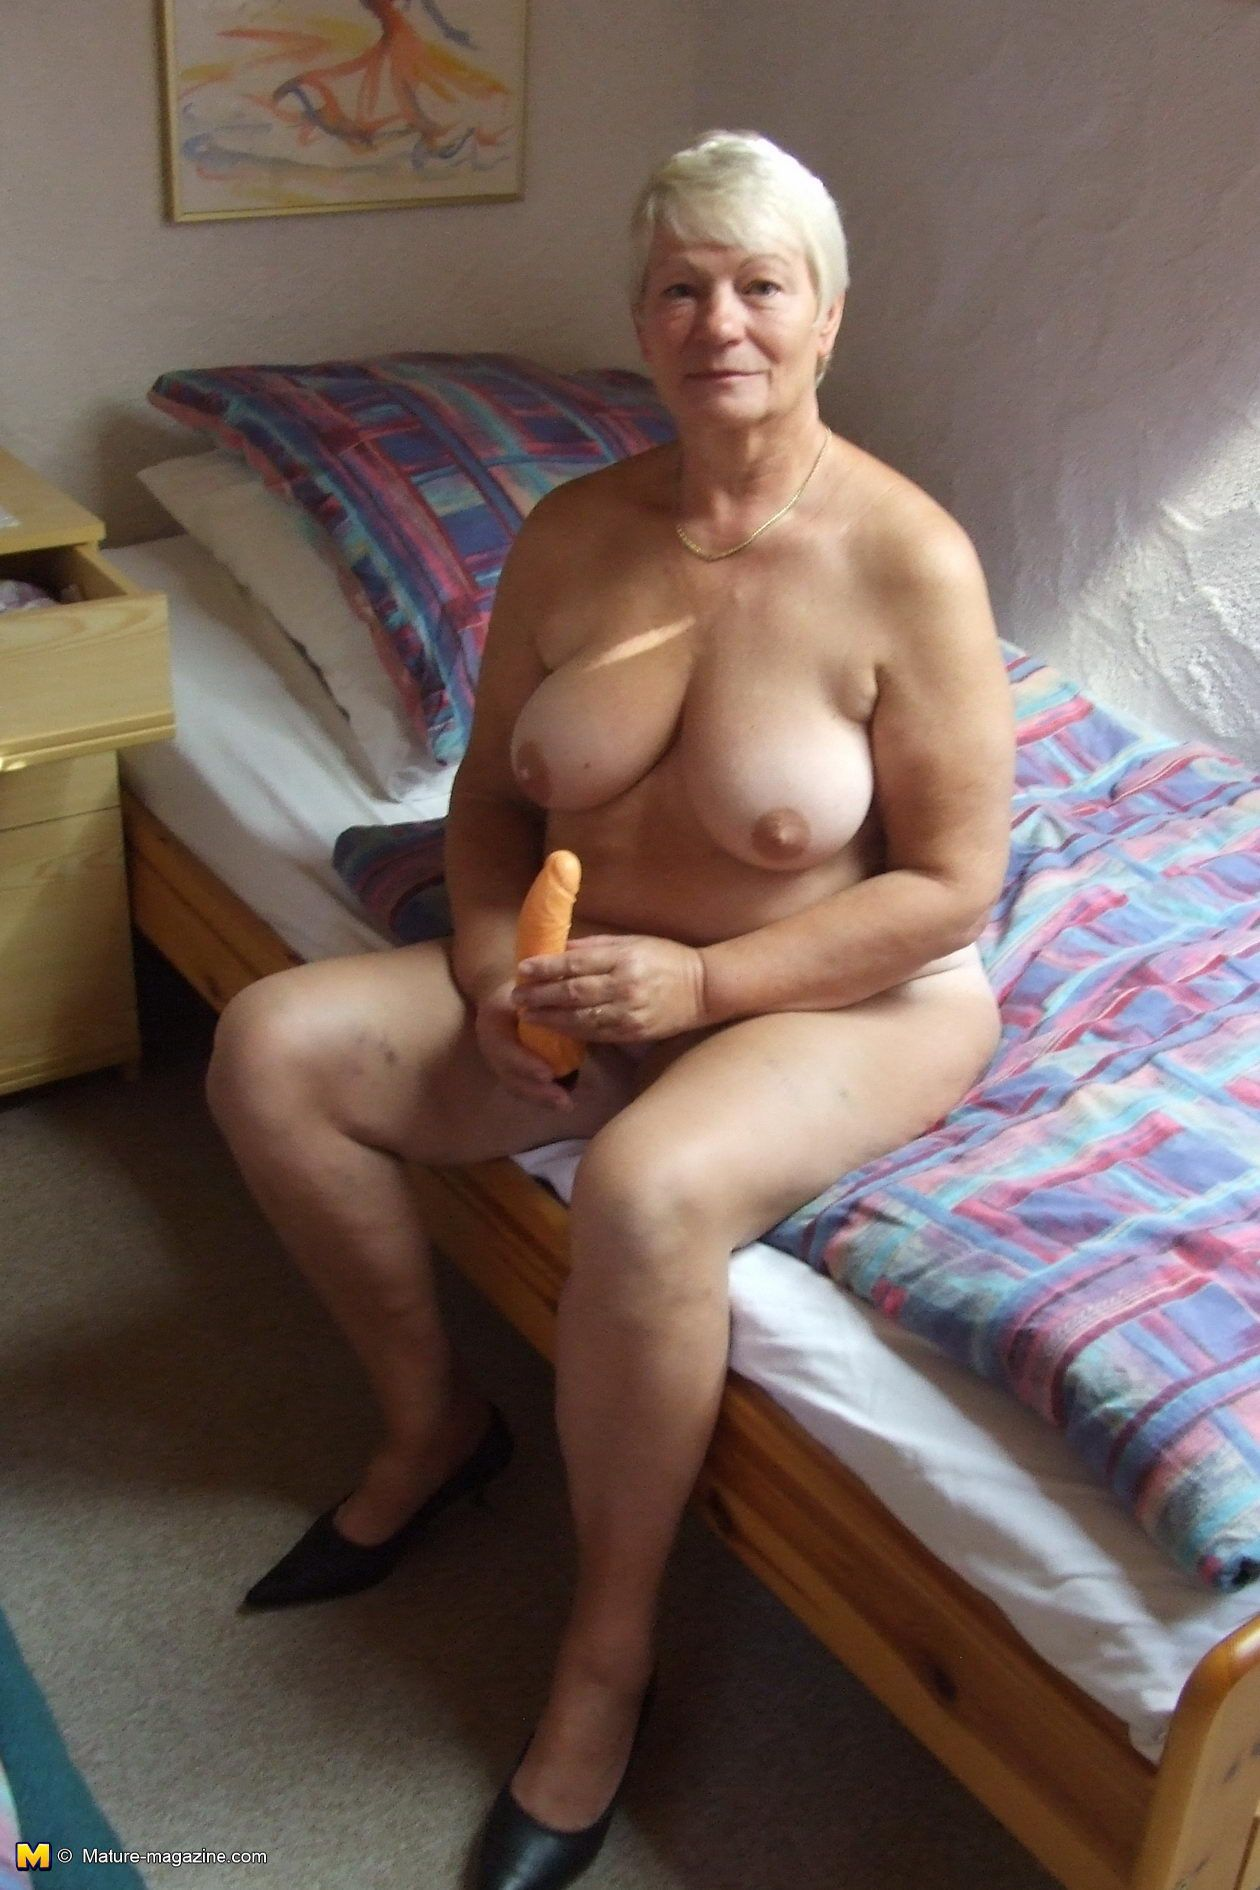 Teenage xxx pic canadian